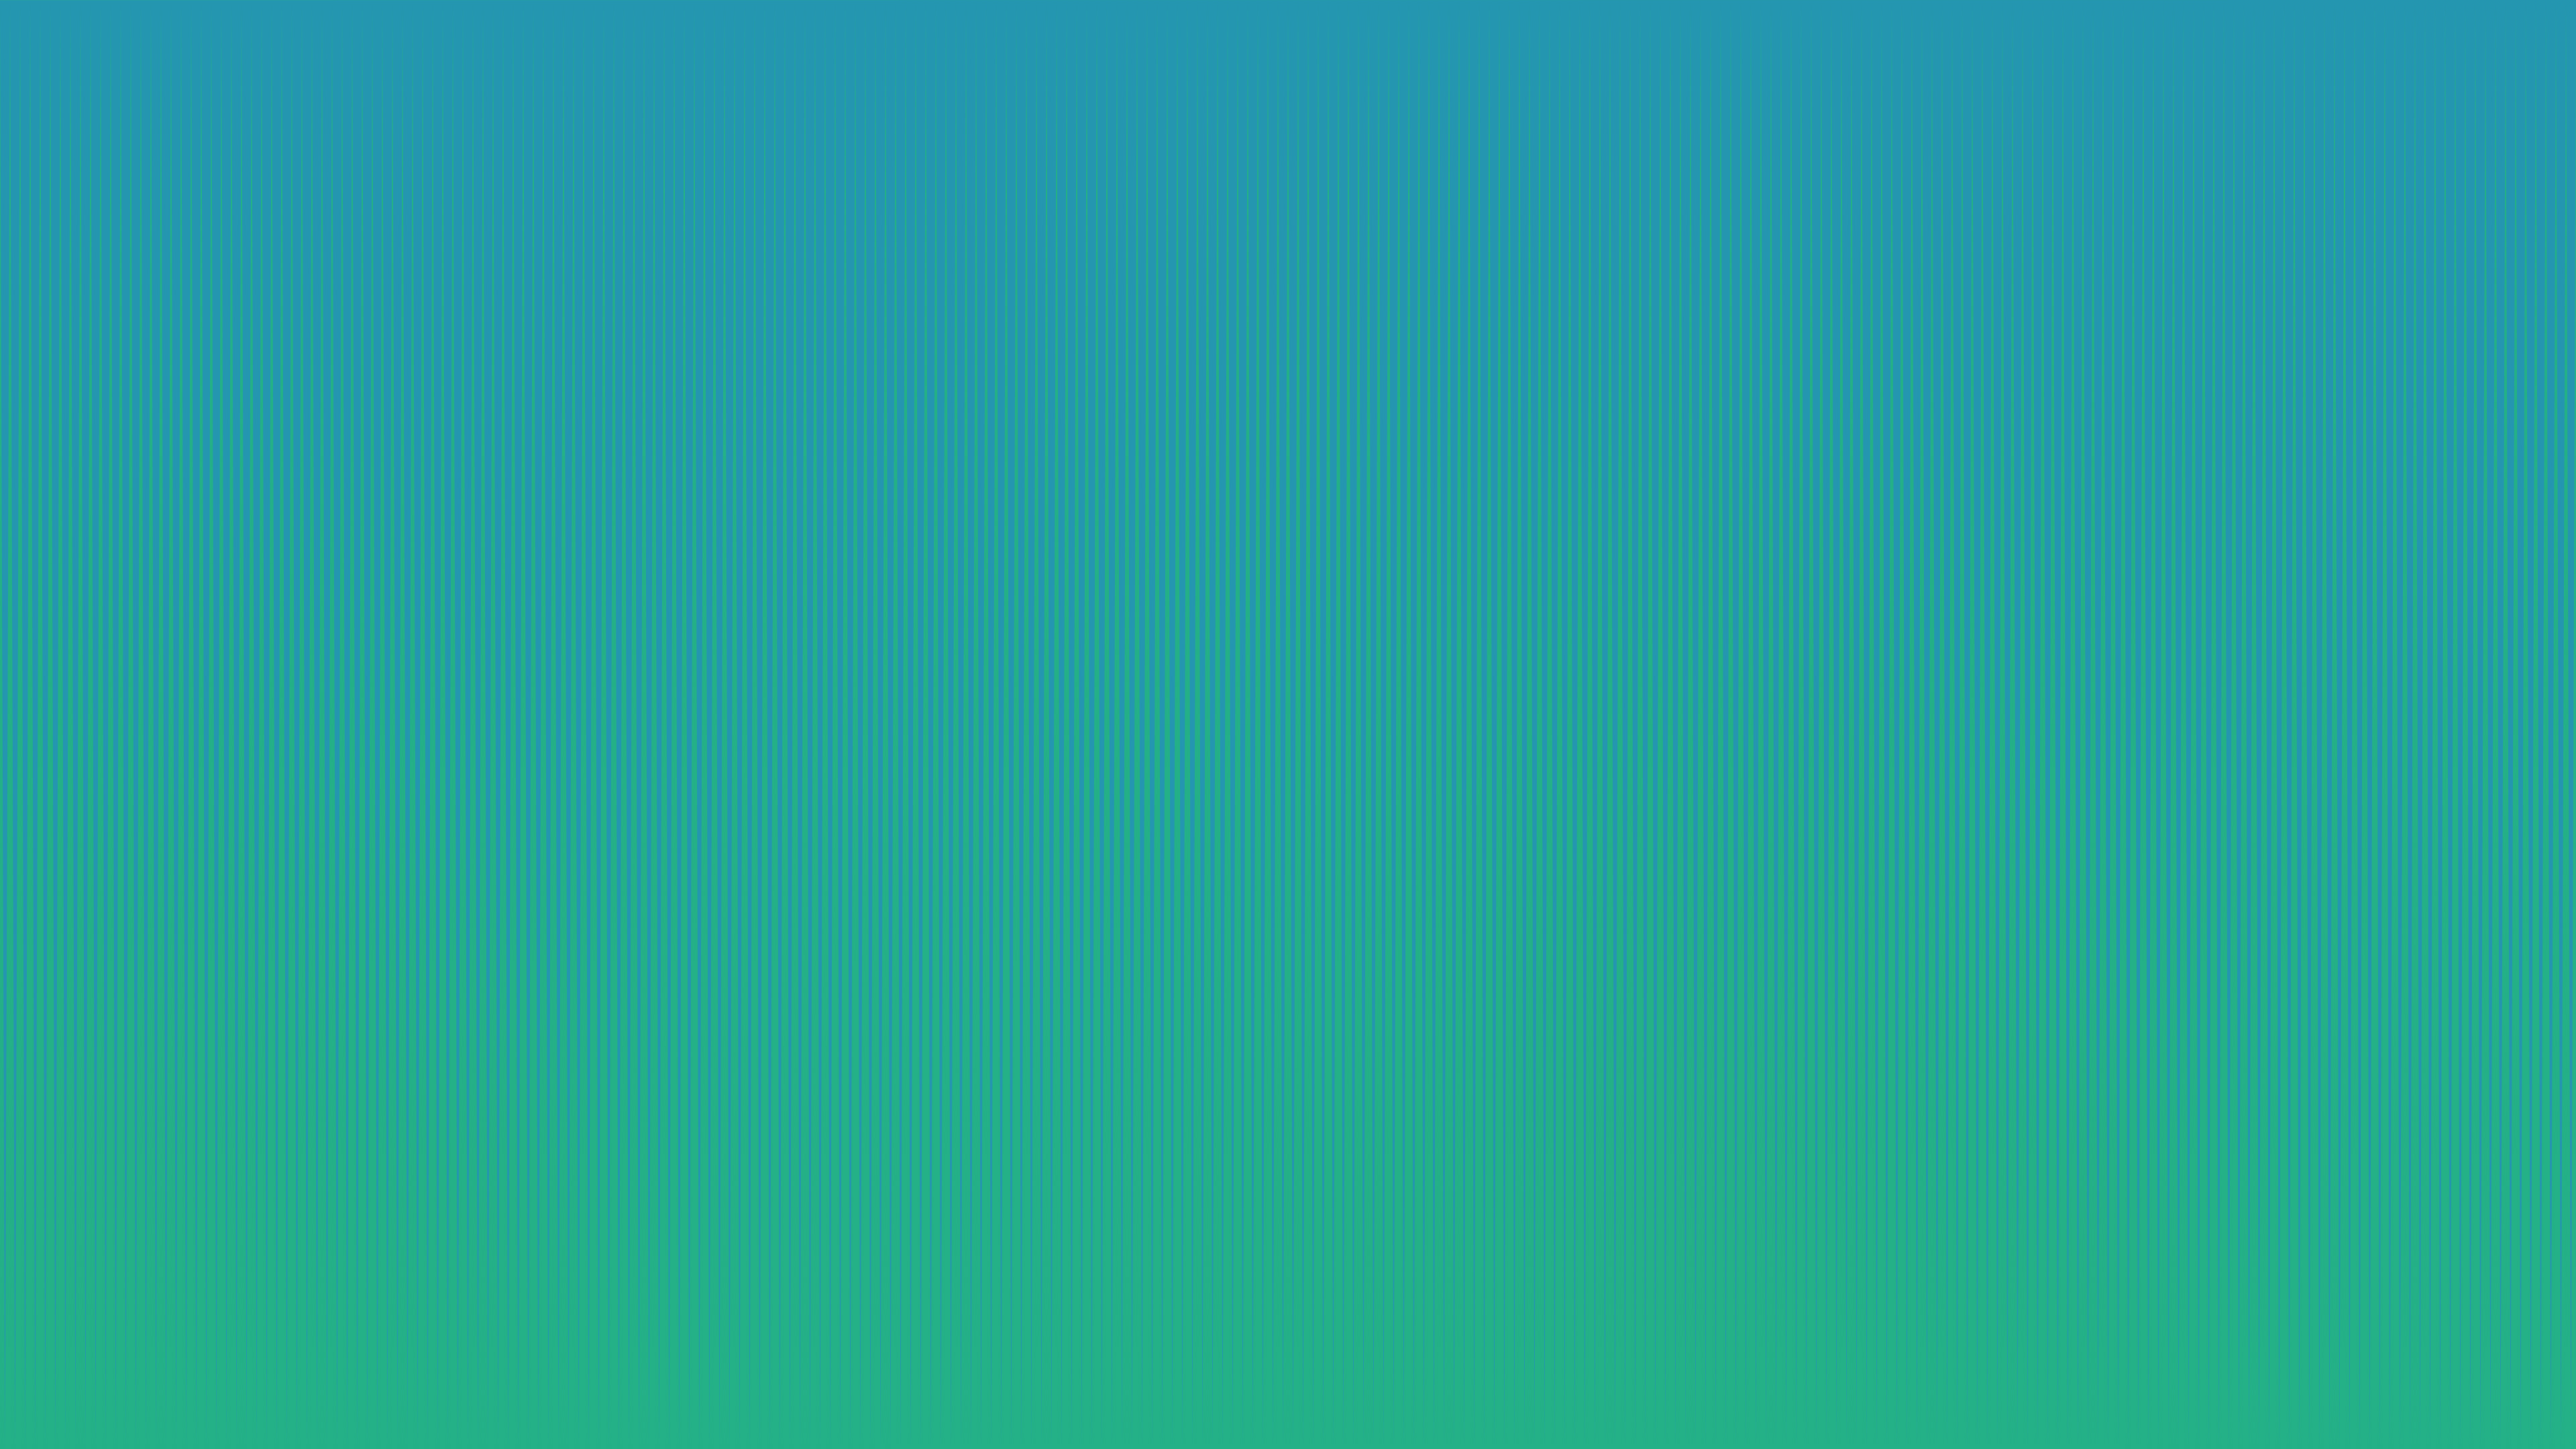 Blue Green Gradient Minimal 4k Hd Abstract 4k Wallpapers